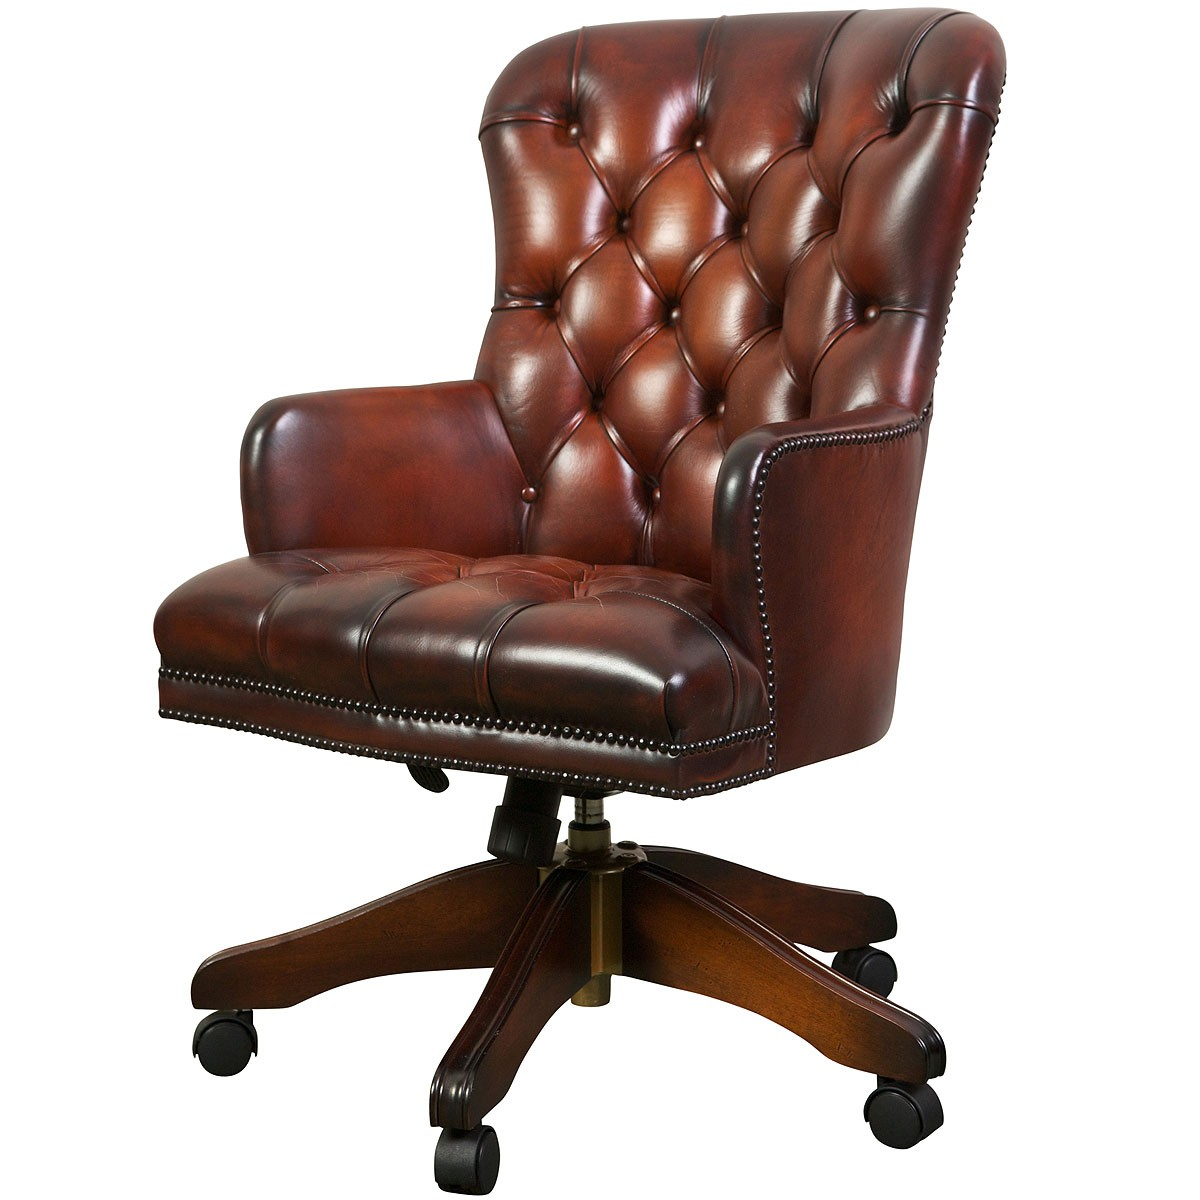 Queen Anne Swivel Chair, Desk Chairs From Brights Of Nettlebed